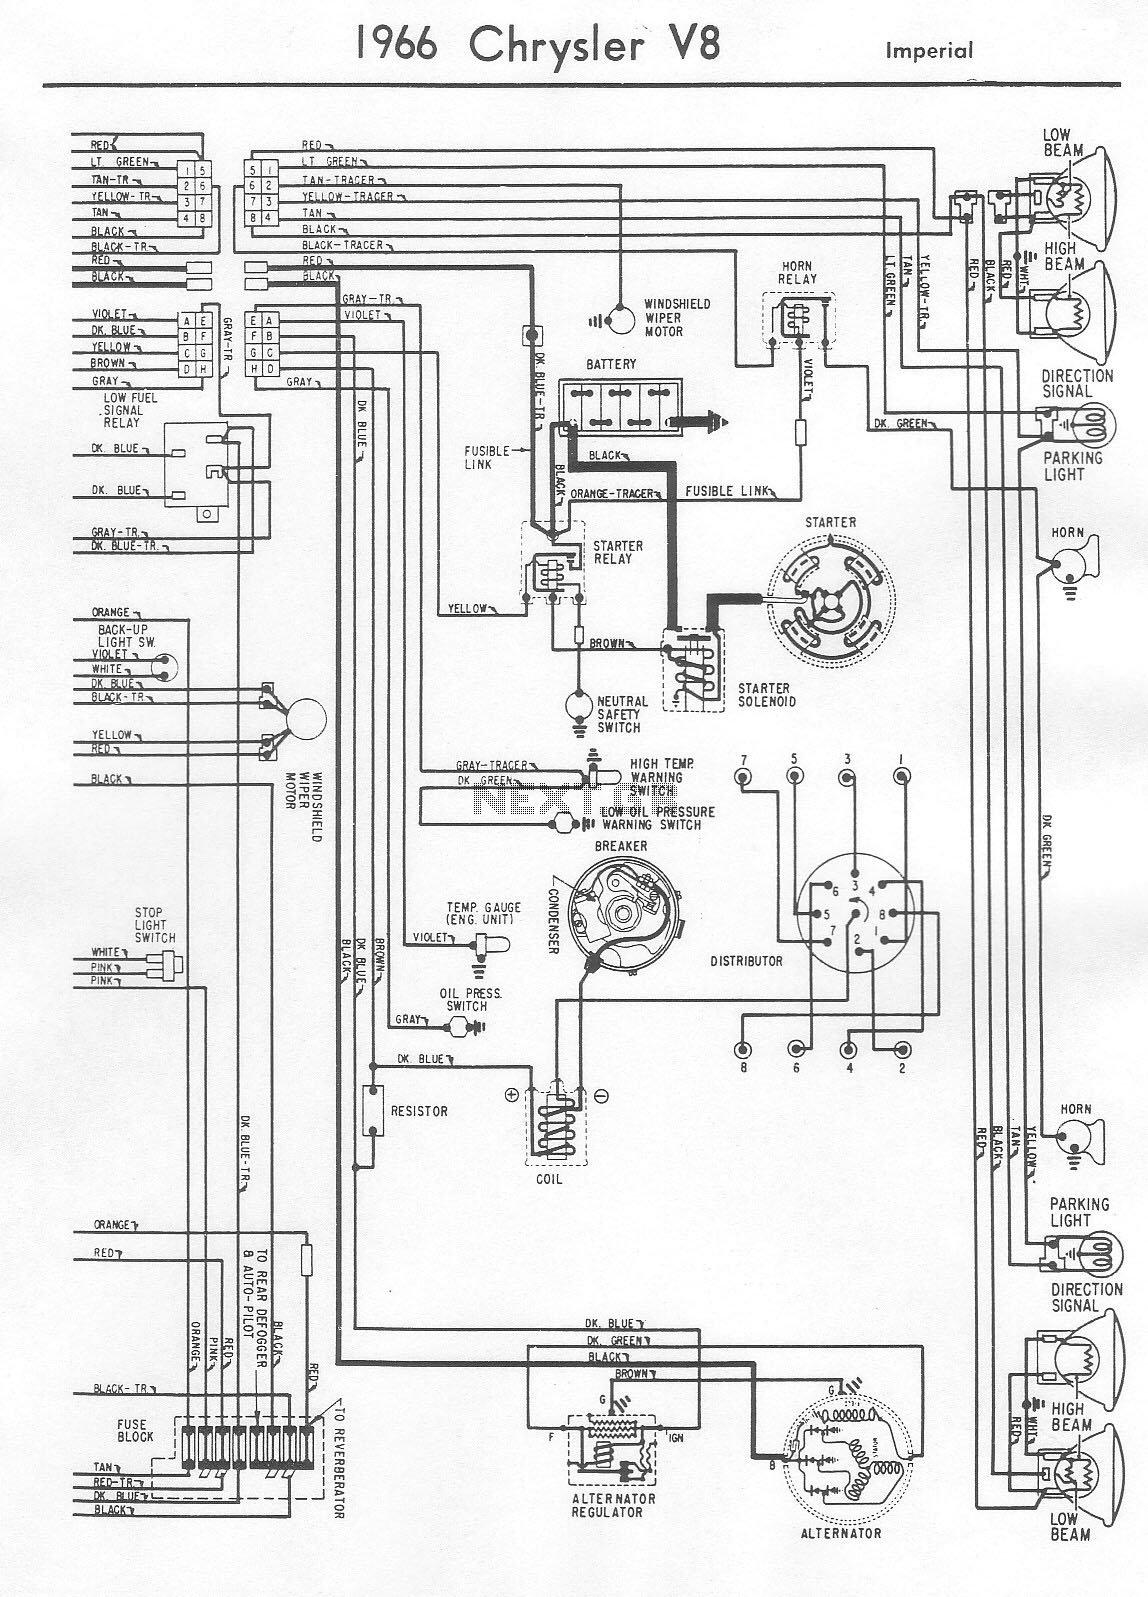 Front Rear Brake Diagrams also 4my2x 2000 Ford Focus Se Airbag Light Stays On additionally Silverado Front Air Bag Sensor Location likewise AovJQJ furthermore 1955 Ford T Bird Wiring Diagram Free. on ford brake light wiring diagram